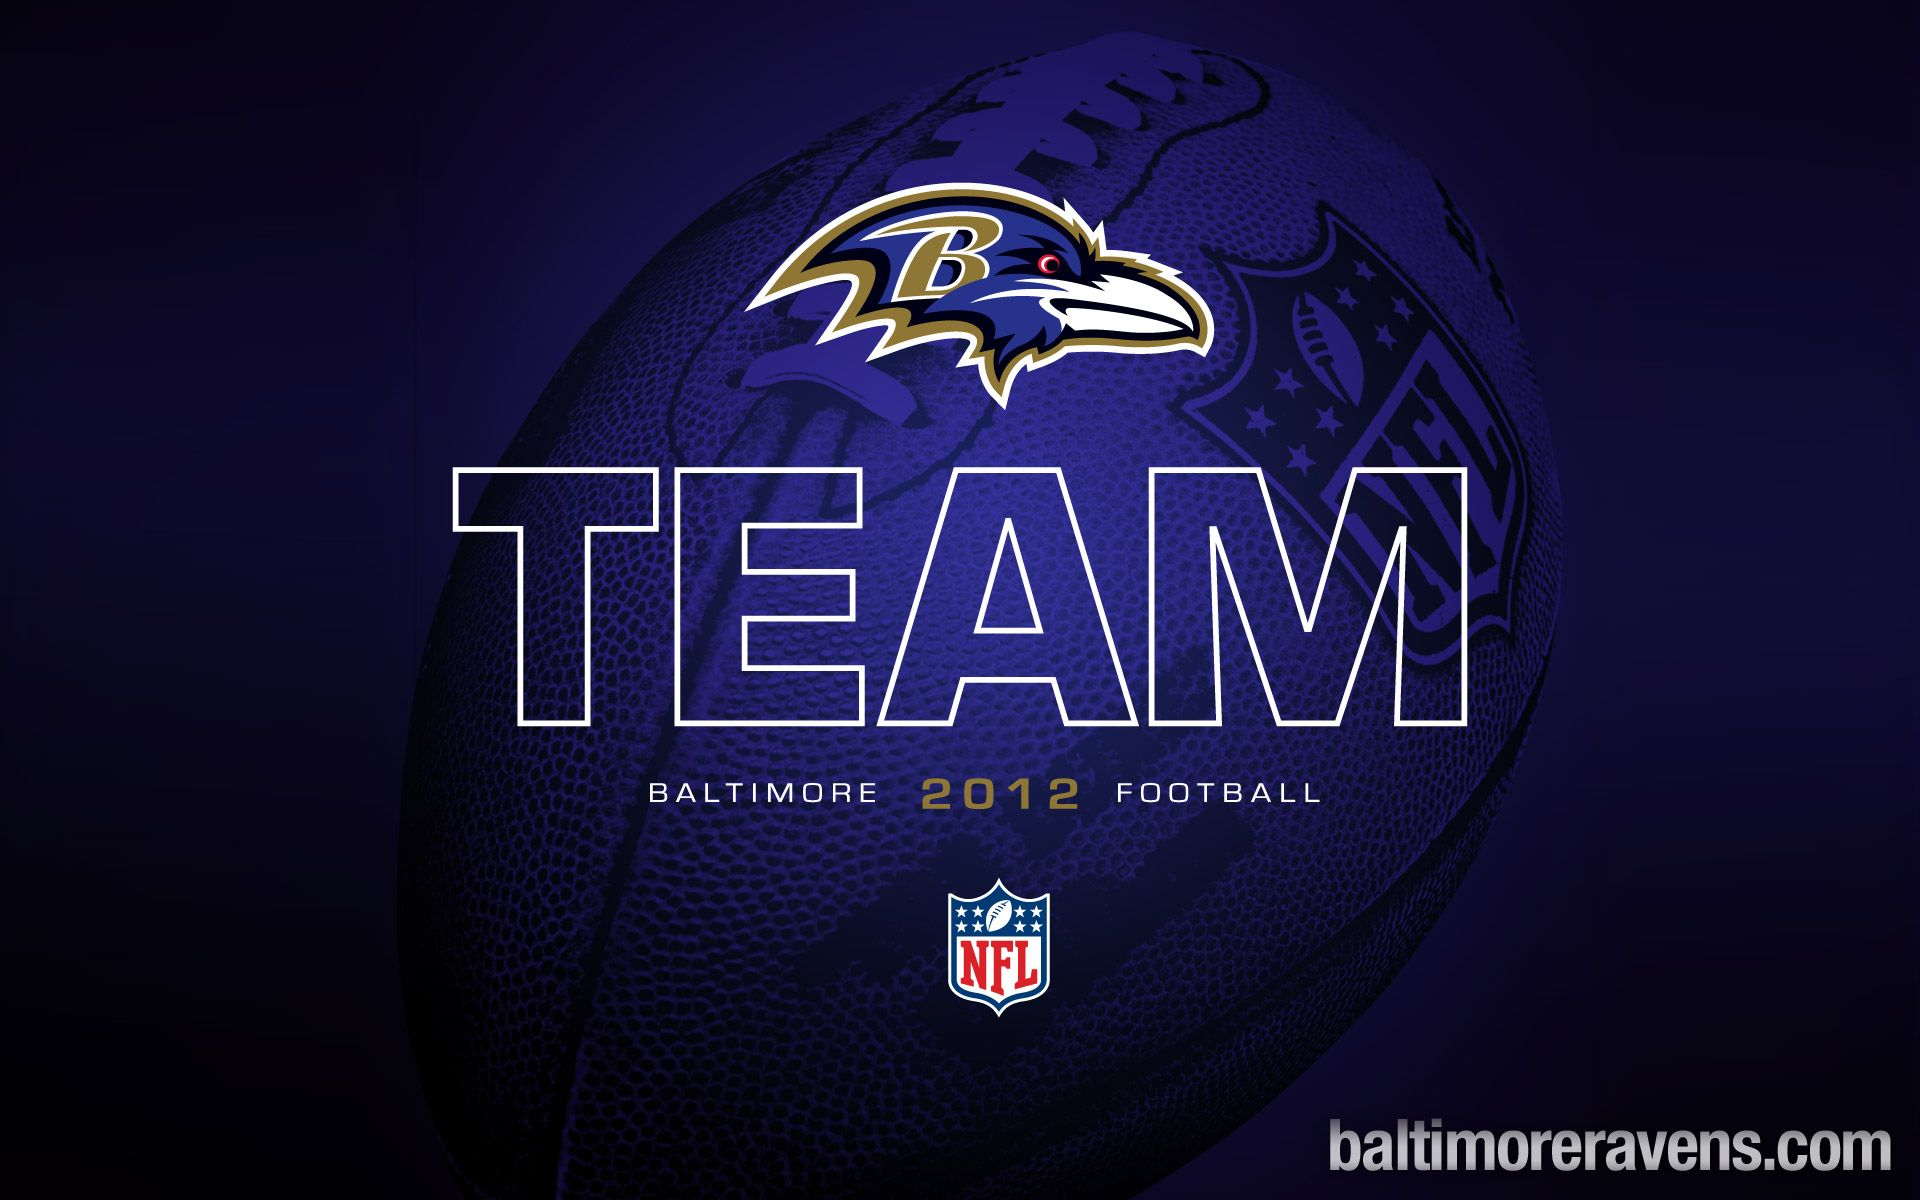 Announcing The 2012 Baltimore Ravens Nfl football